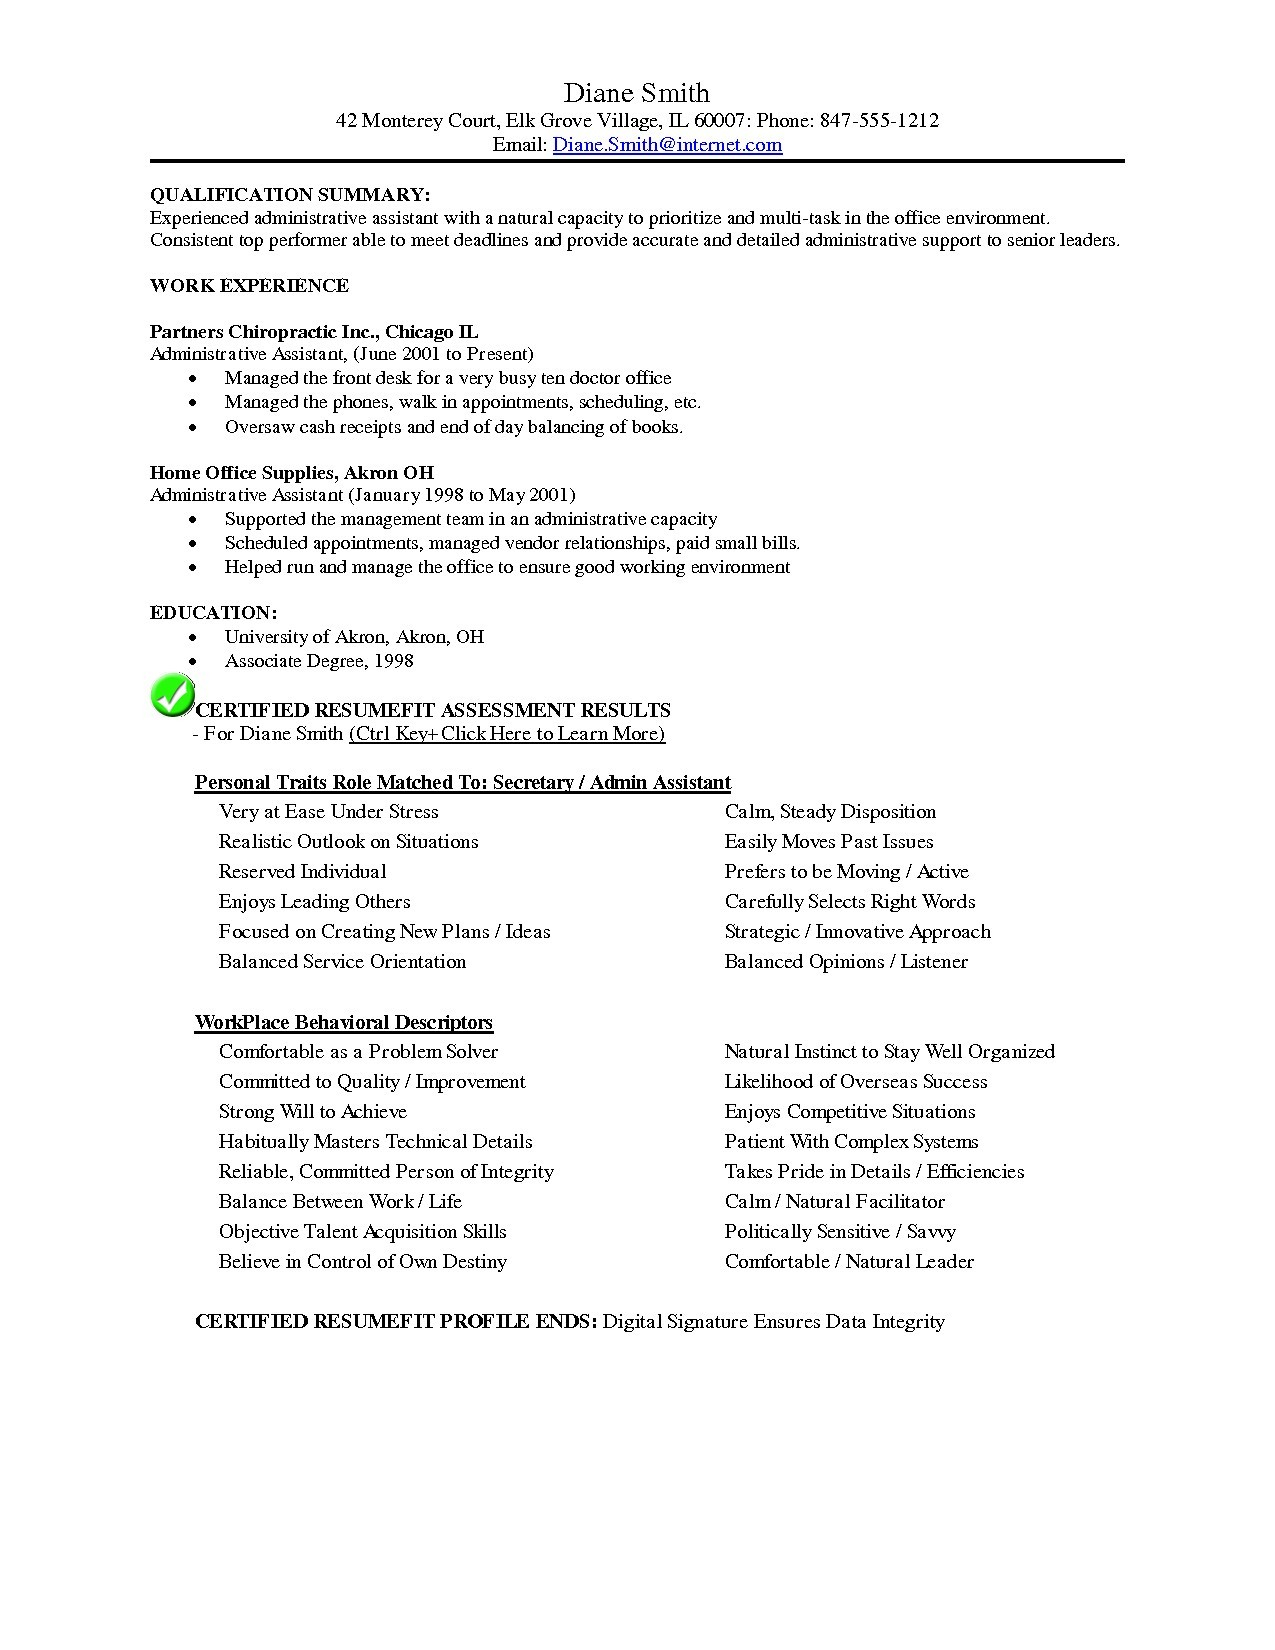 Nursing Resume Template Microsoft Word - 23 Resume Templates for Nursing Jobs